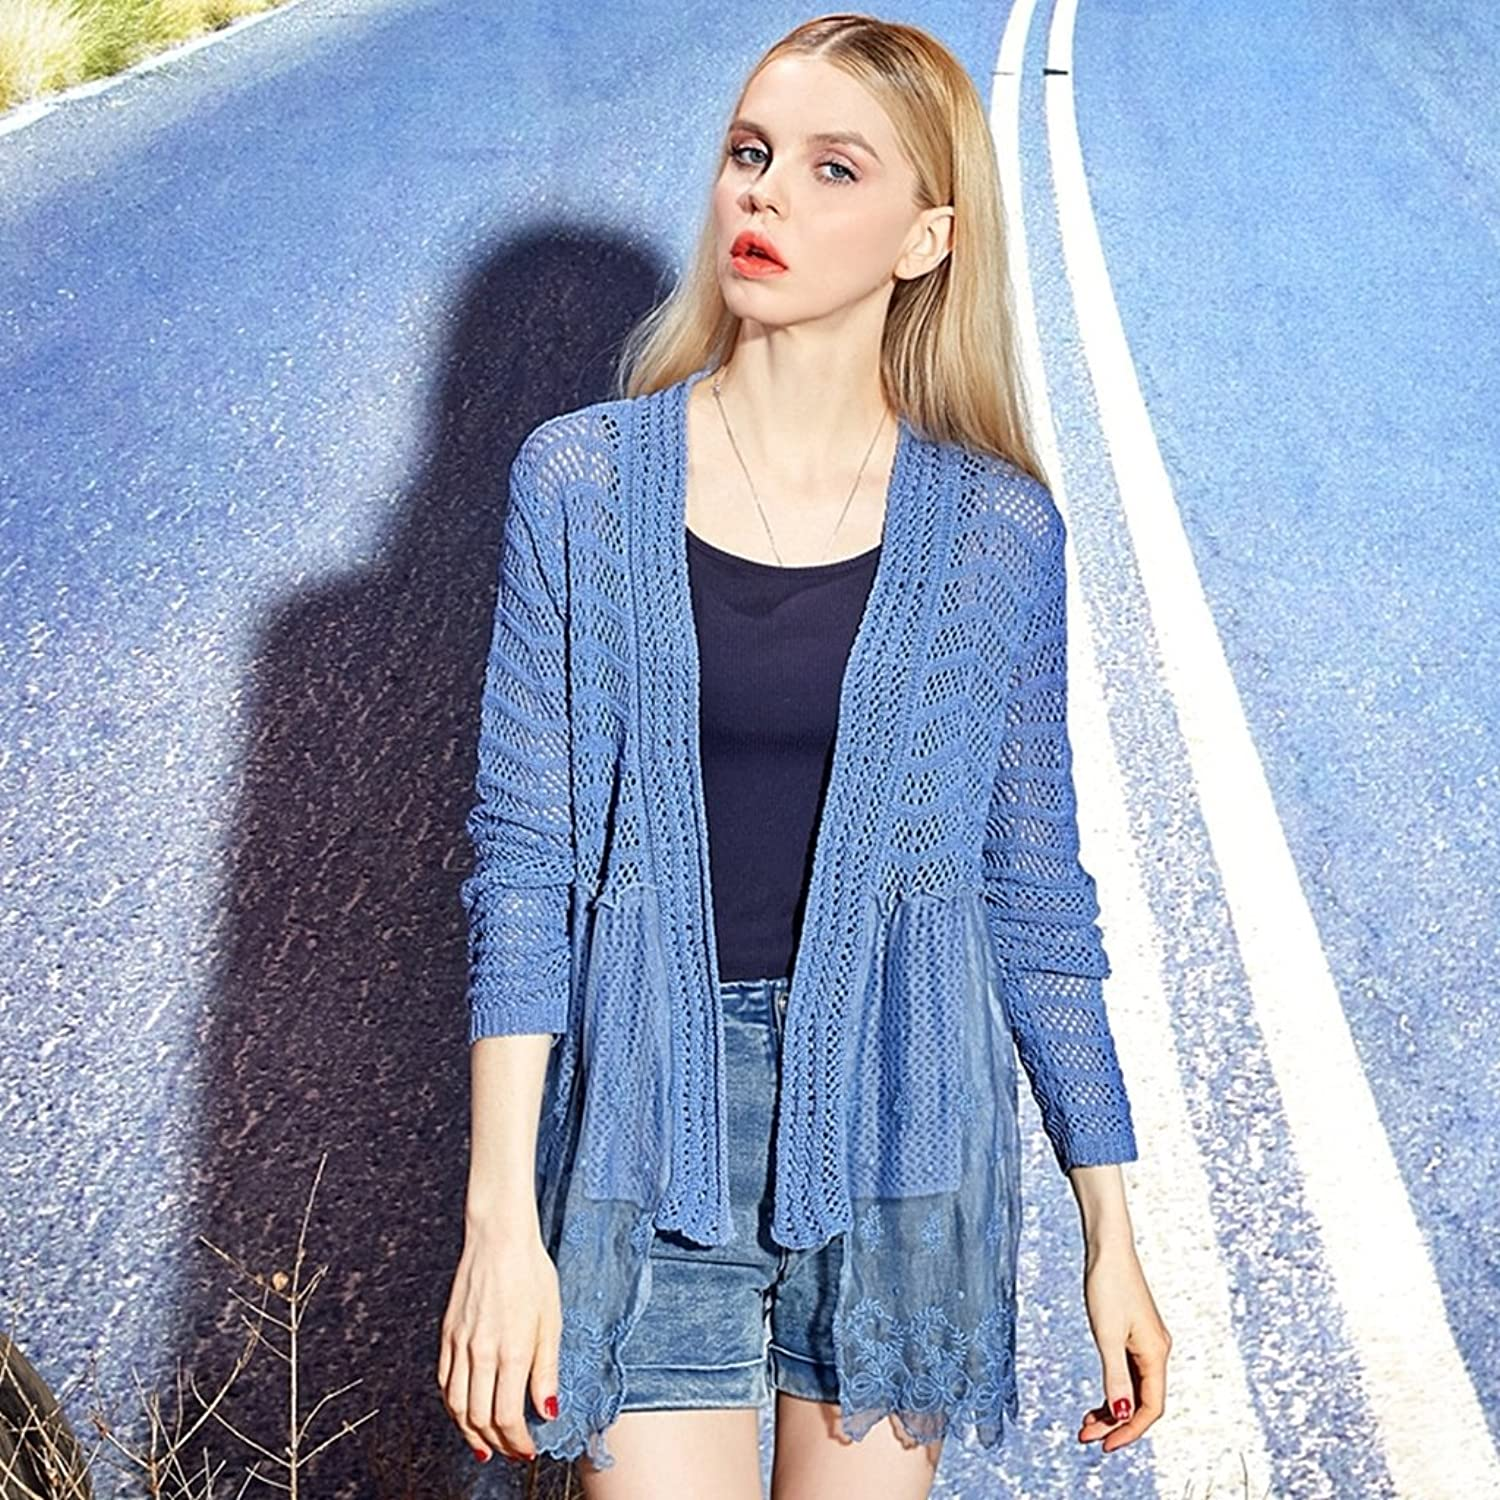 Elf Sack Womens Spring Spliced Mesh Embroidered Knitwear Sweater